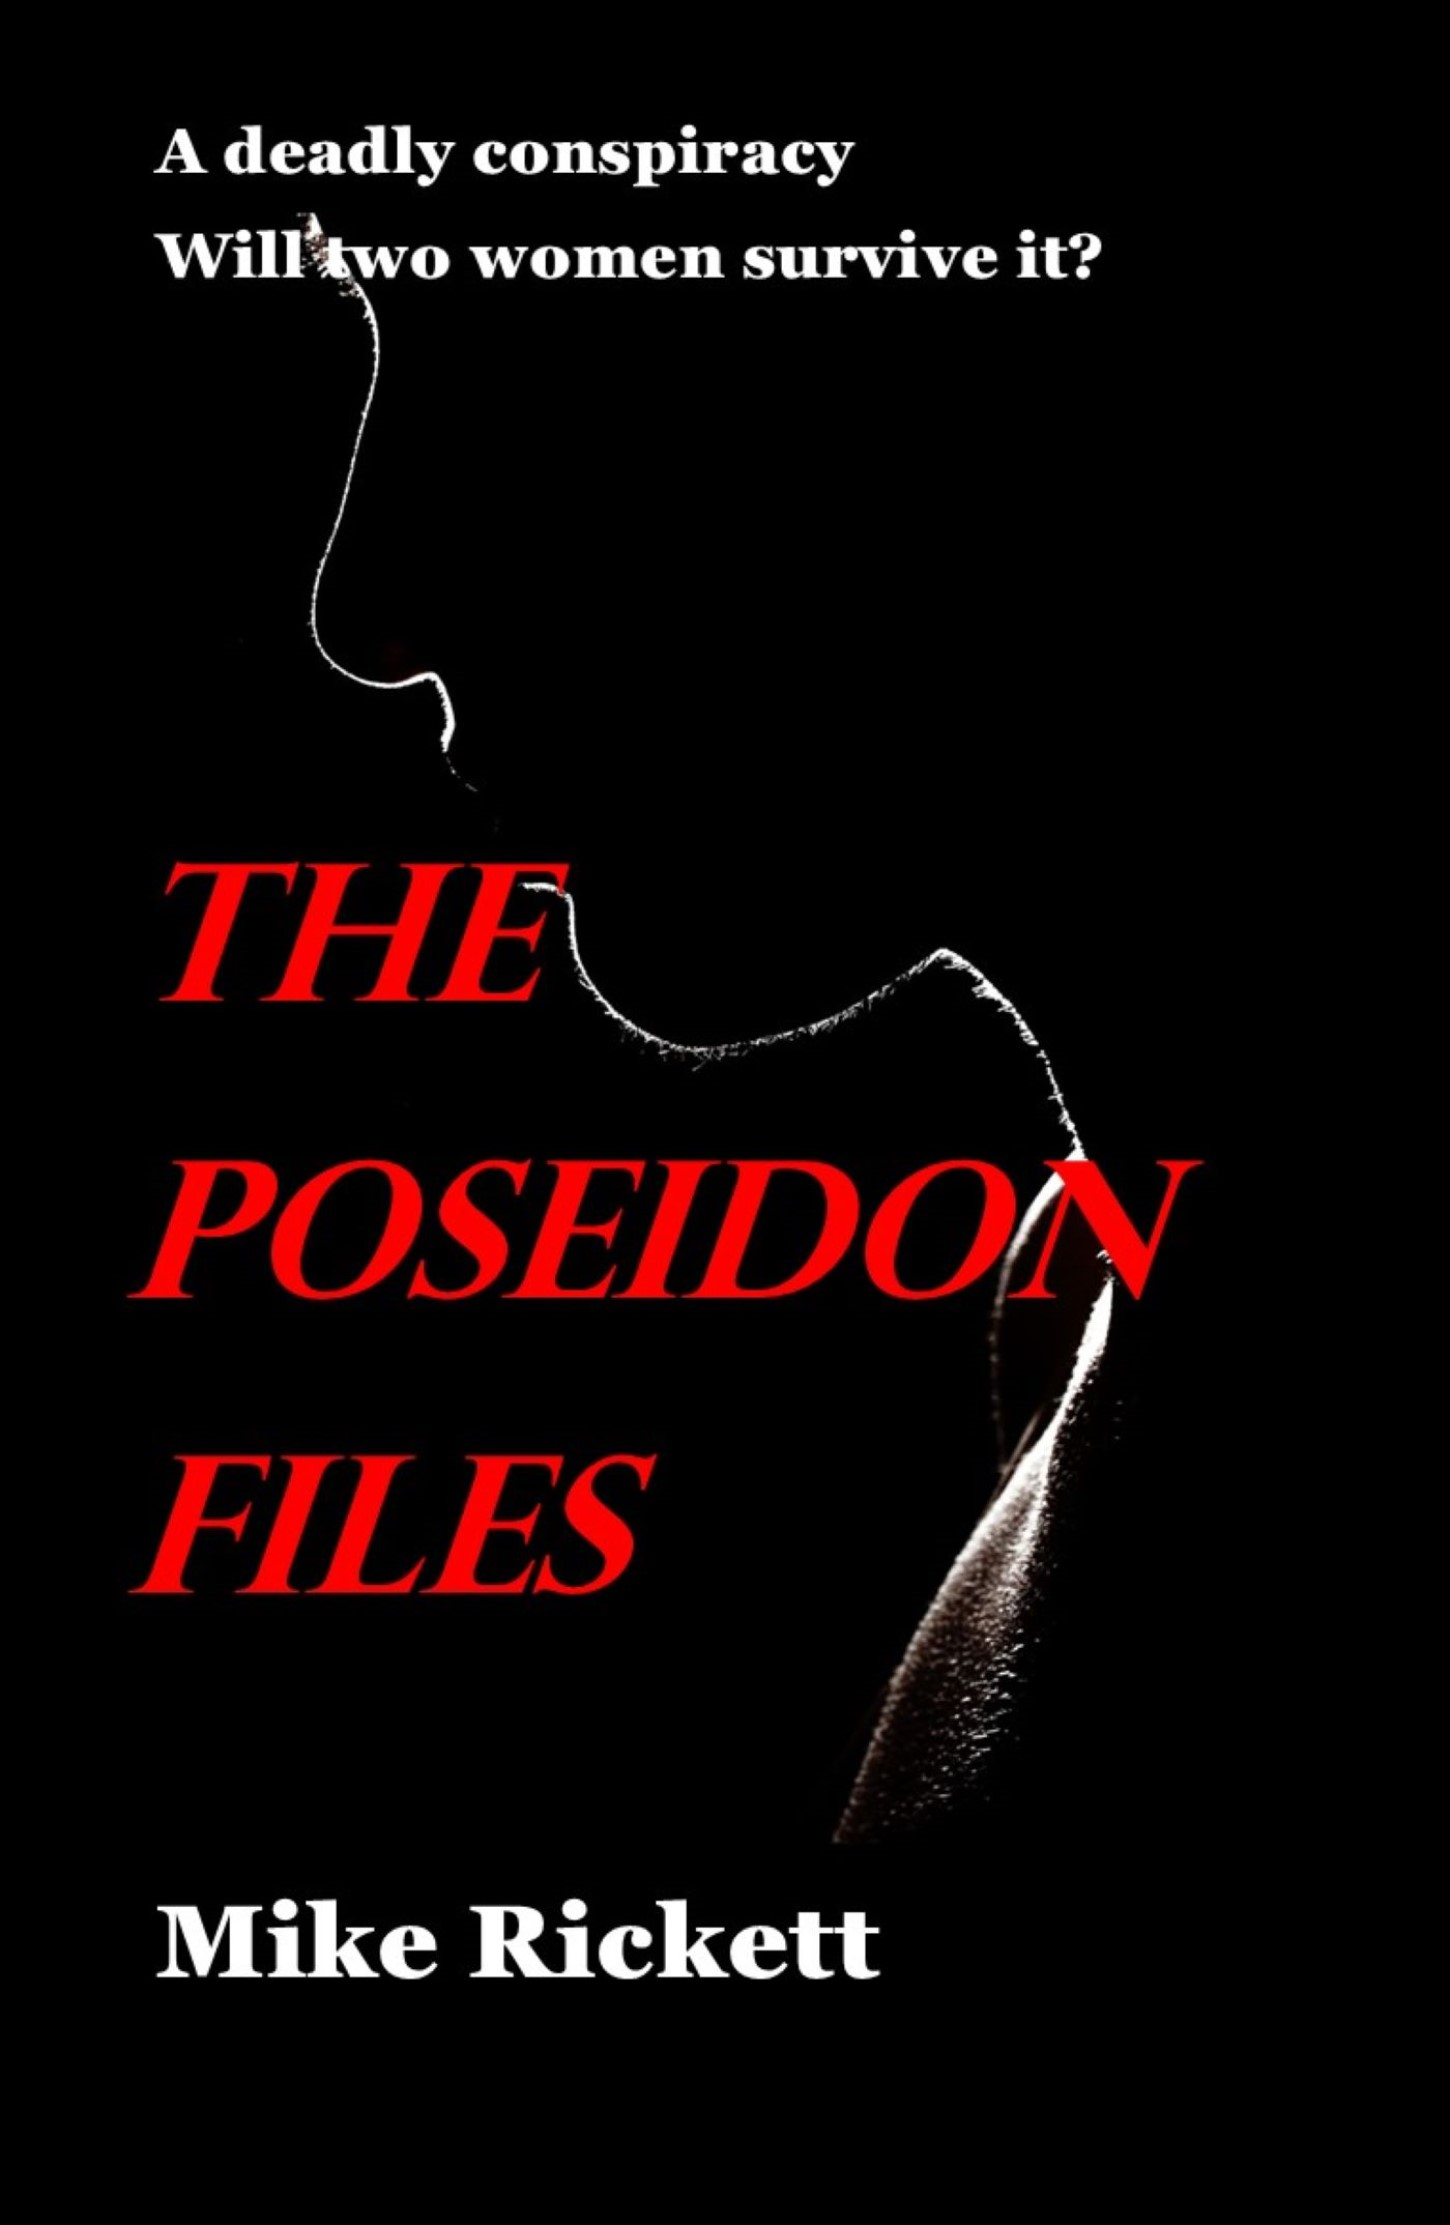 The Poseidon Files's Ebook Image